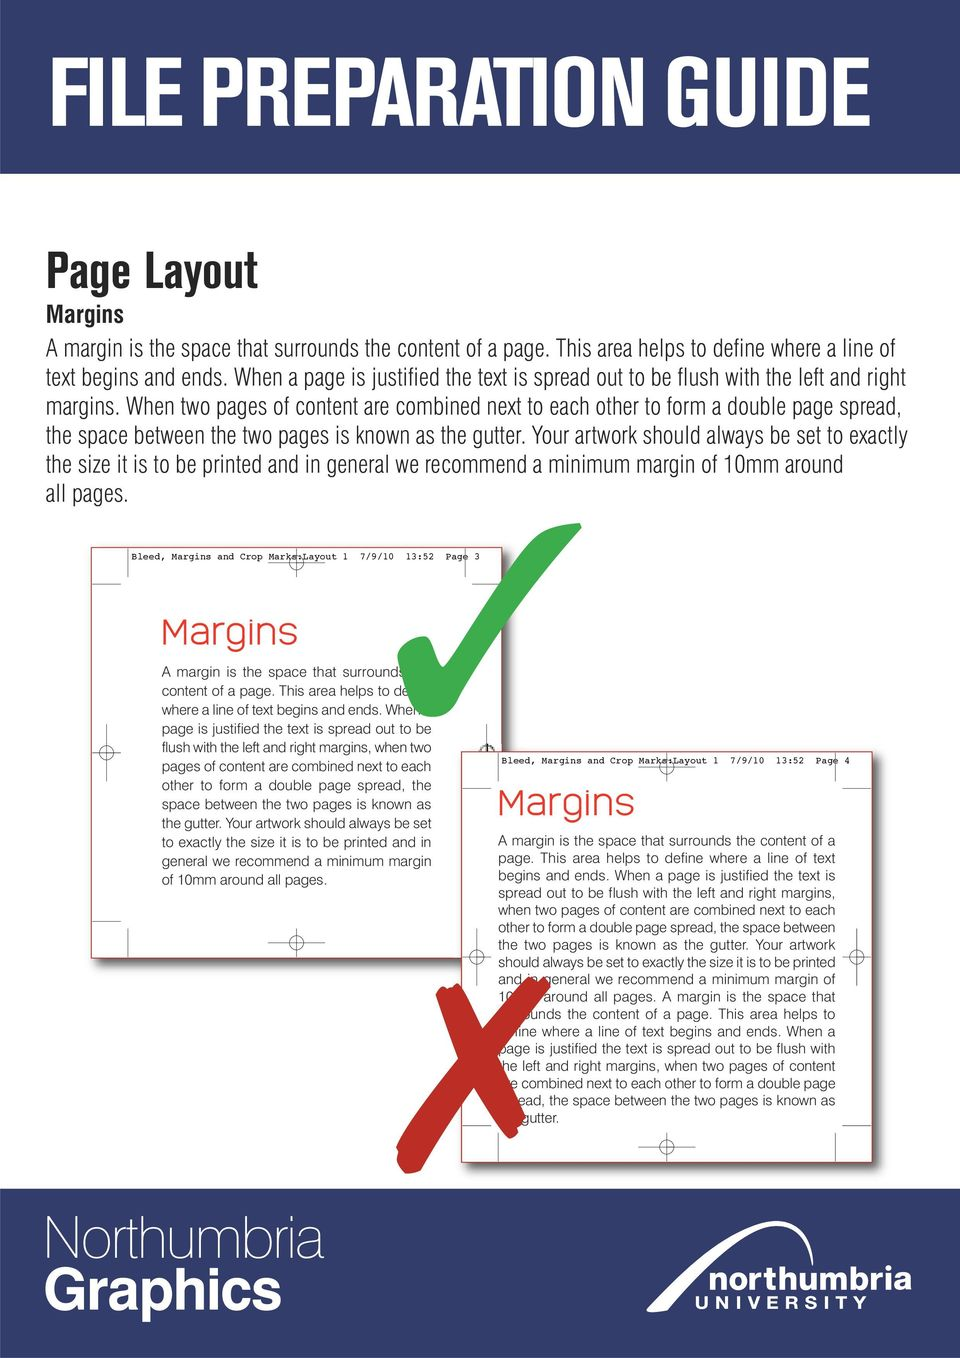 When two pages of content are combined next to each other to form a double page spread, the space between the two pages is known as the gutter.